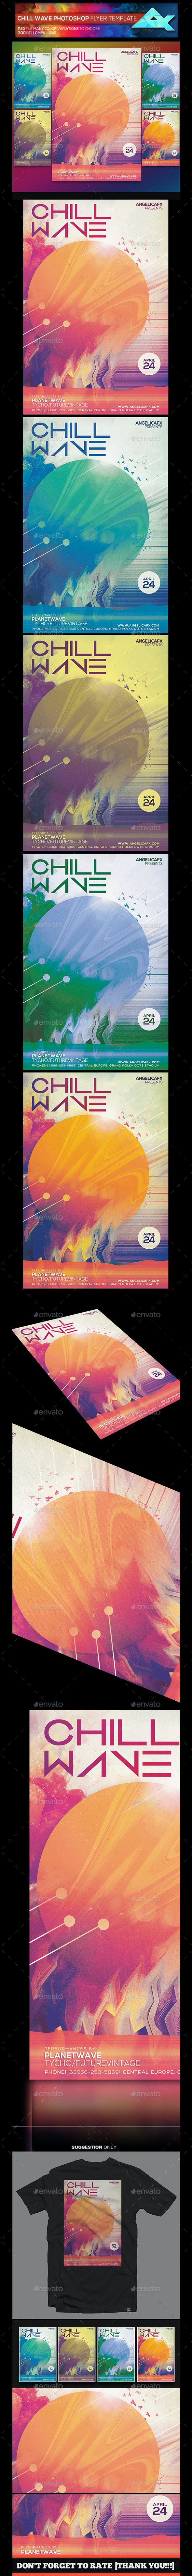 Chill Wave Artwork Photoshop Poster Template - Events Flyers